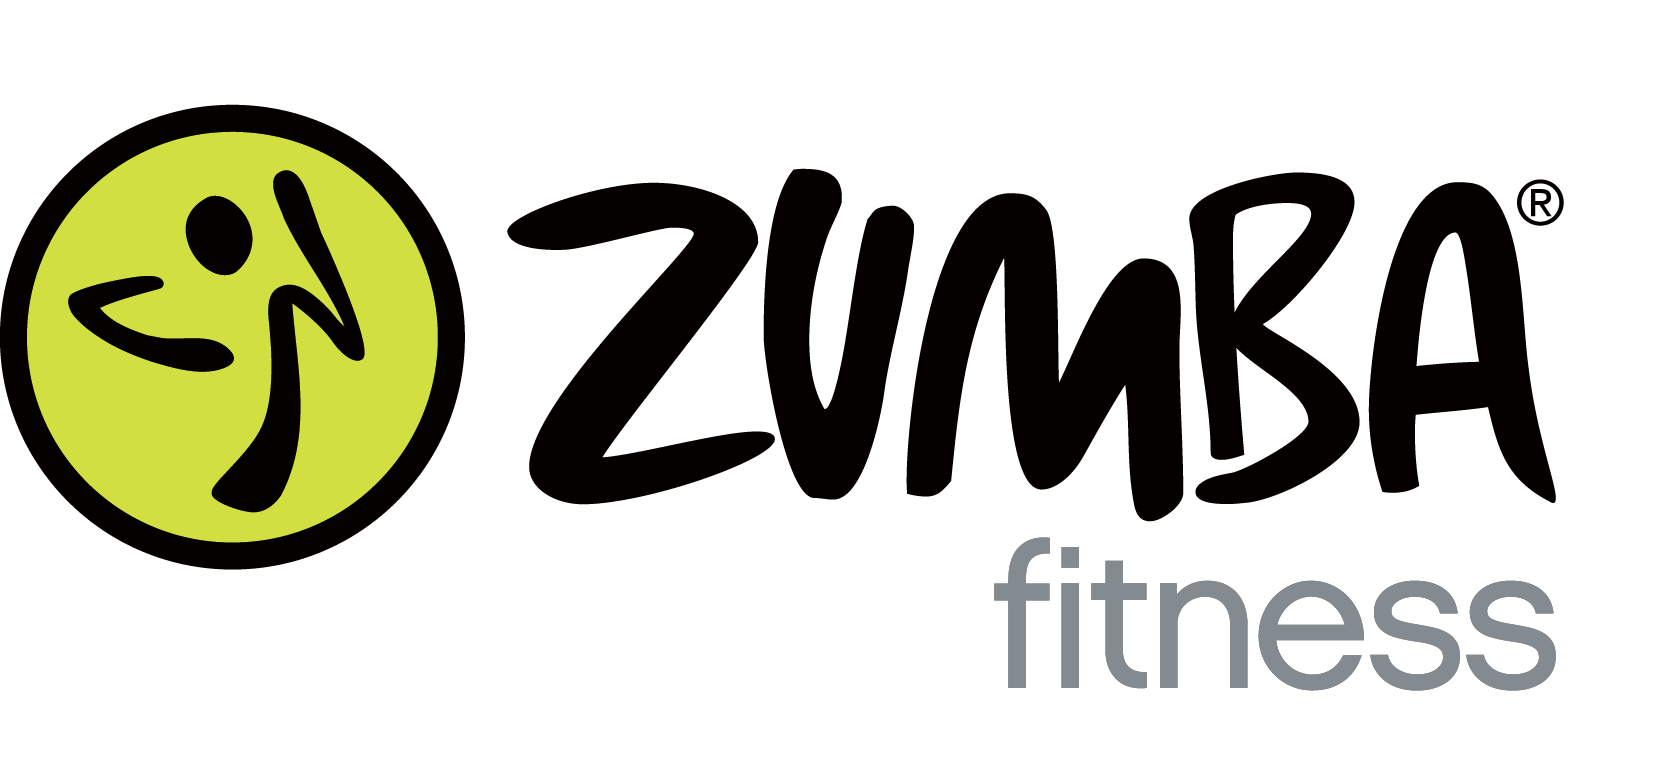 ZUMBA fitness at Booth Dance Denver. Get fit at Booths!